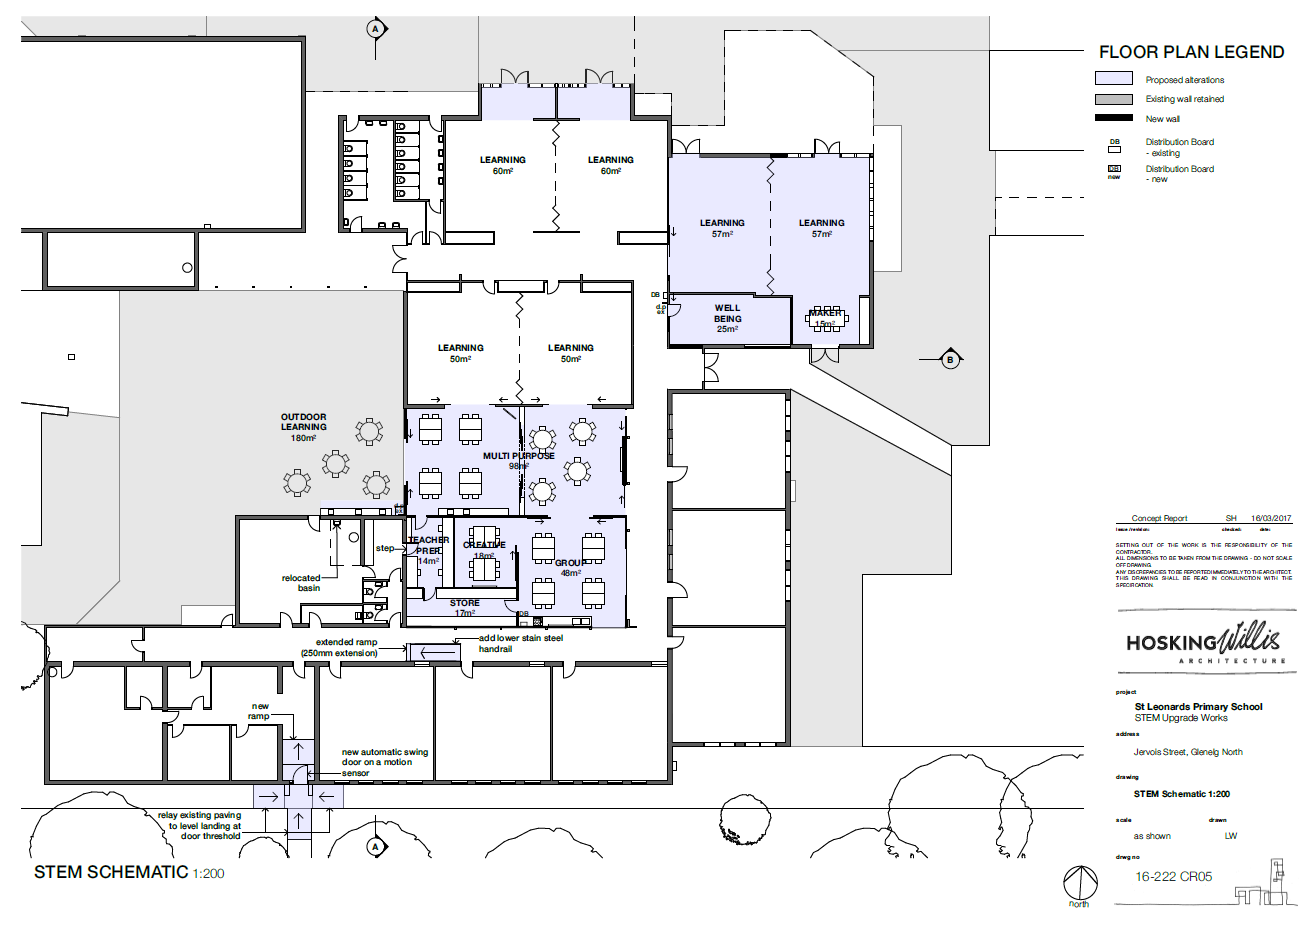 St Leonards primary school - floor plan